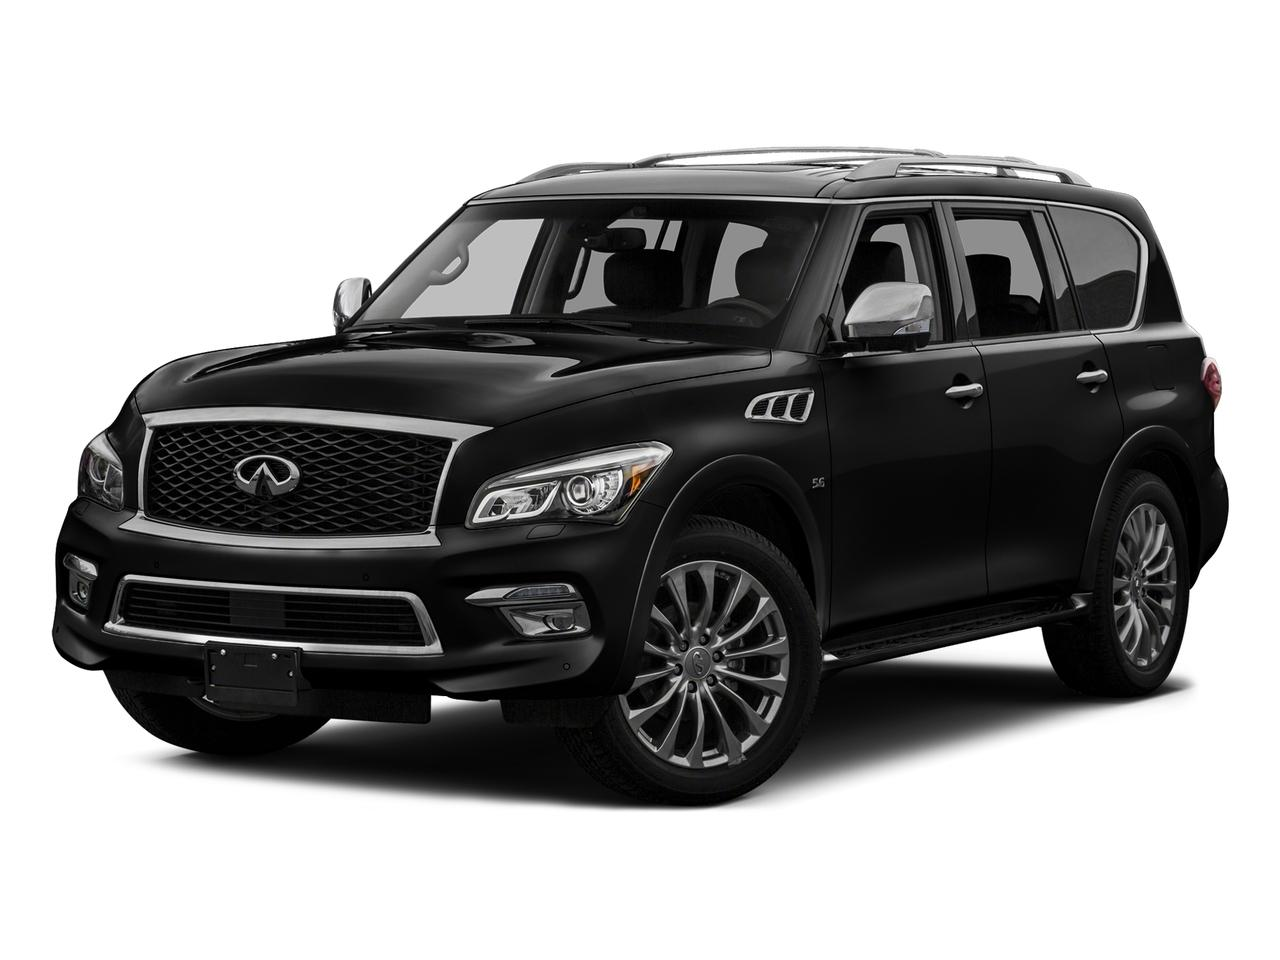 2017 INFINITI QX80 Vehicle Photo in Akron, OH 44312